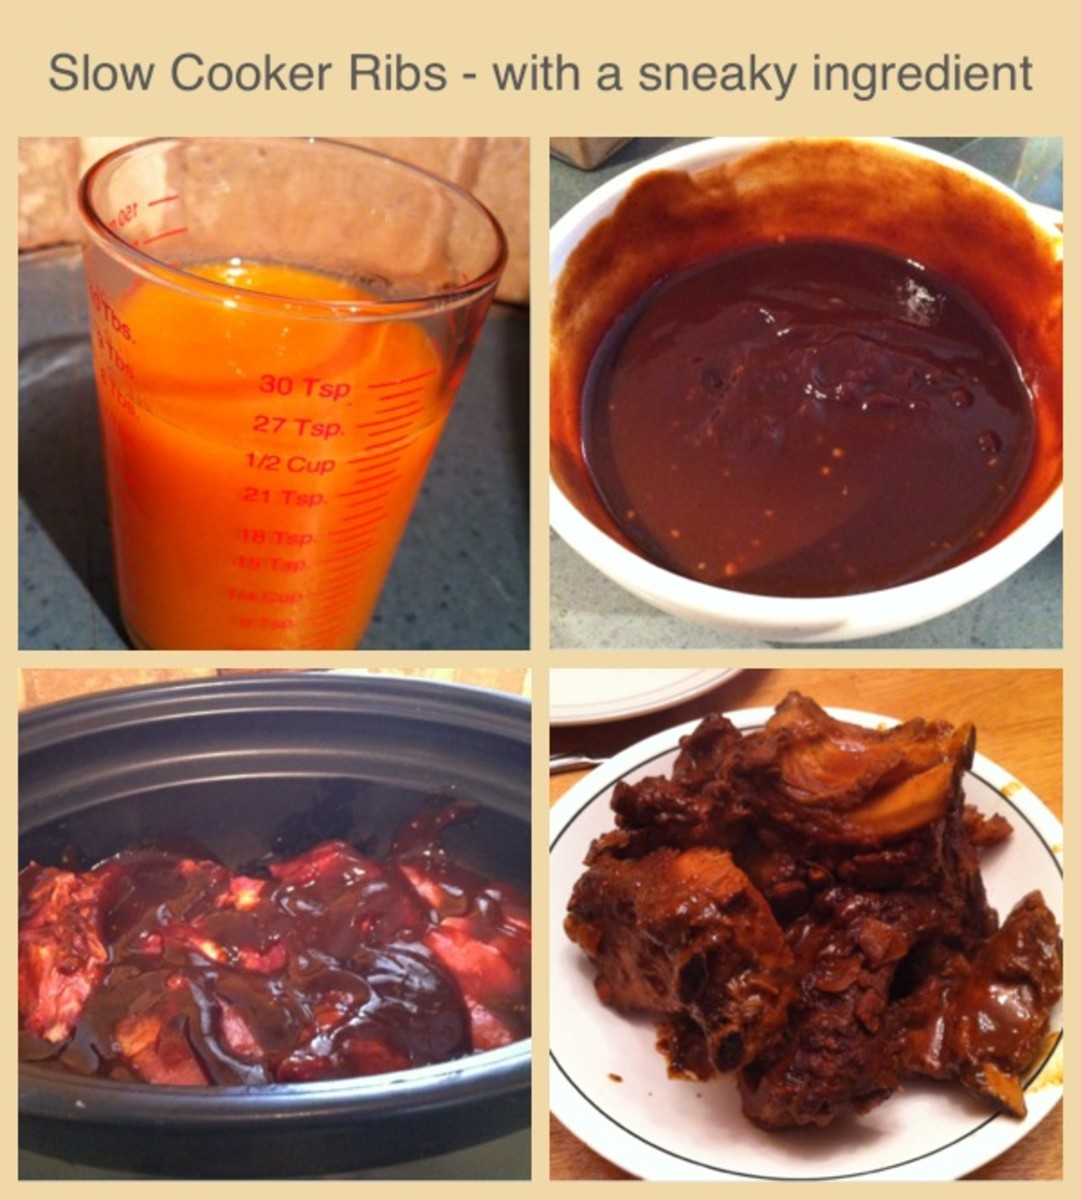 I made barbecue ribs in my slow cooker with a carrot puree in the sauce. They tasted delicious and no one suspected a thing.